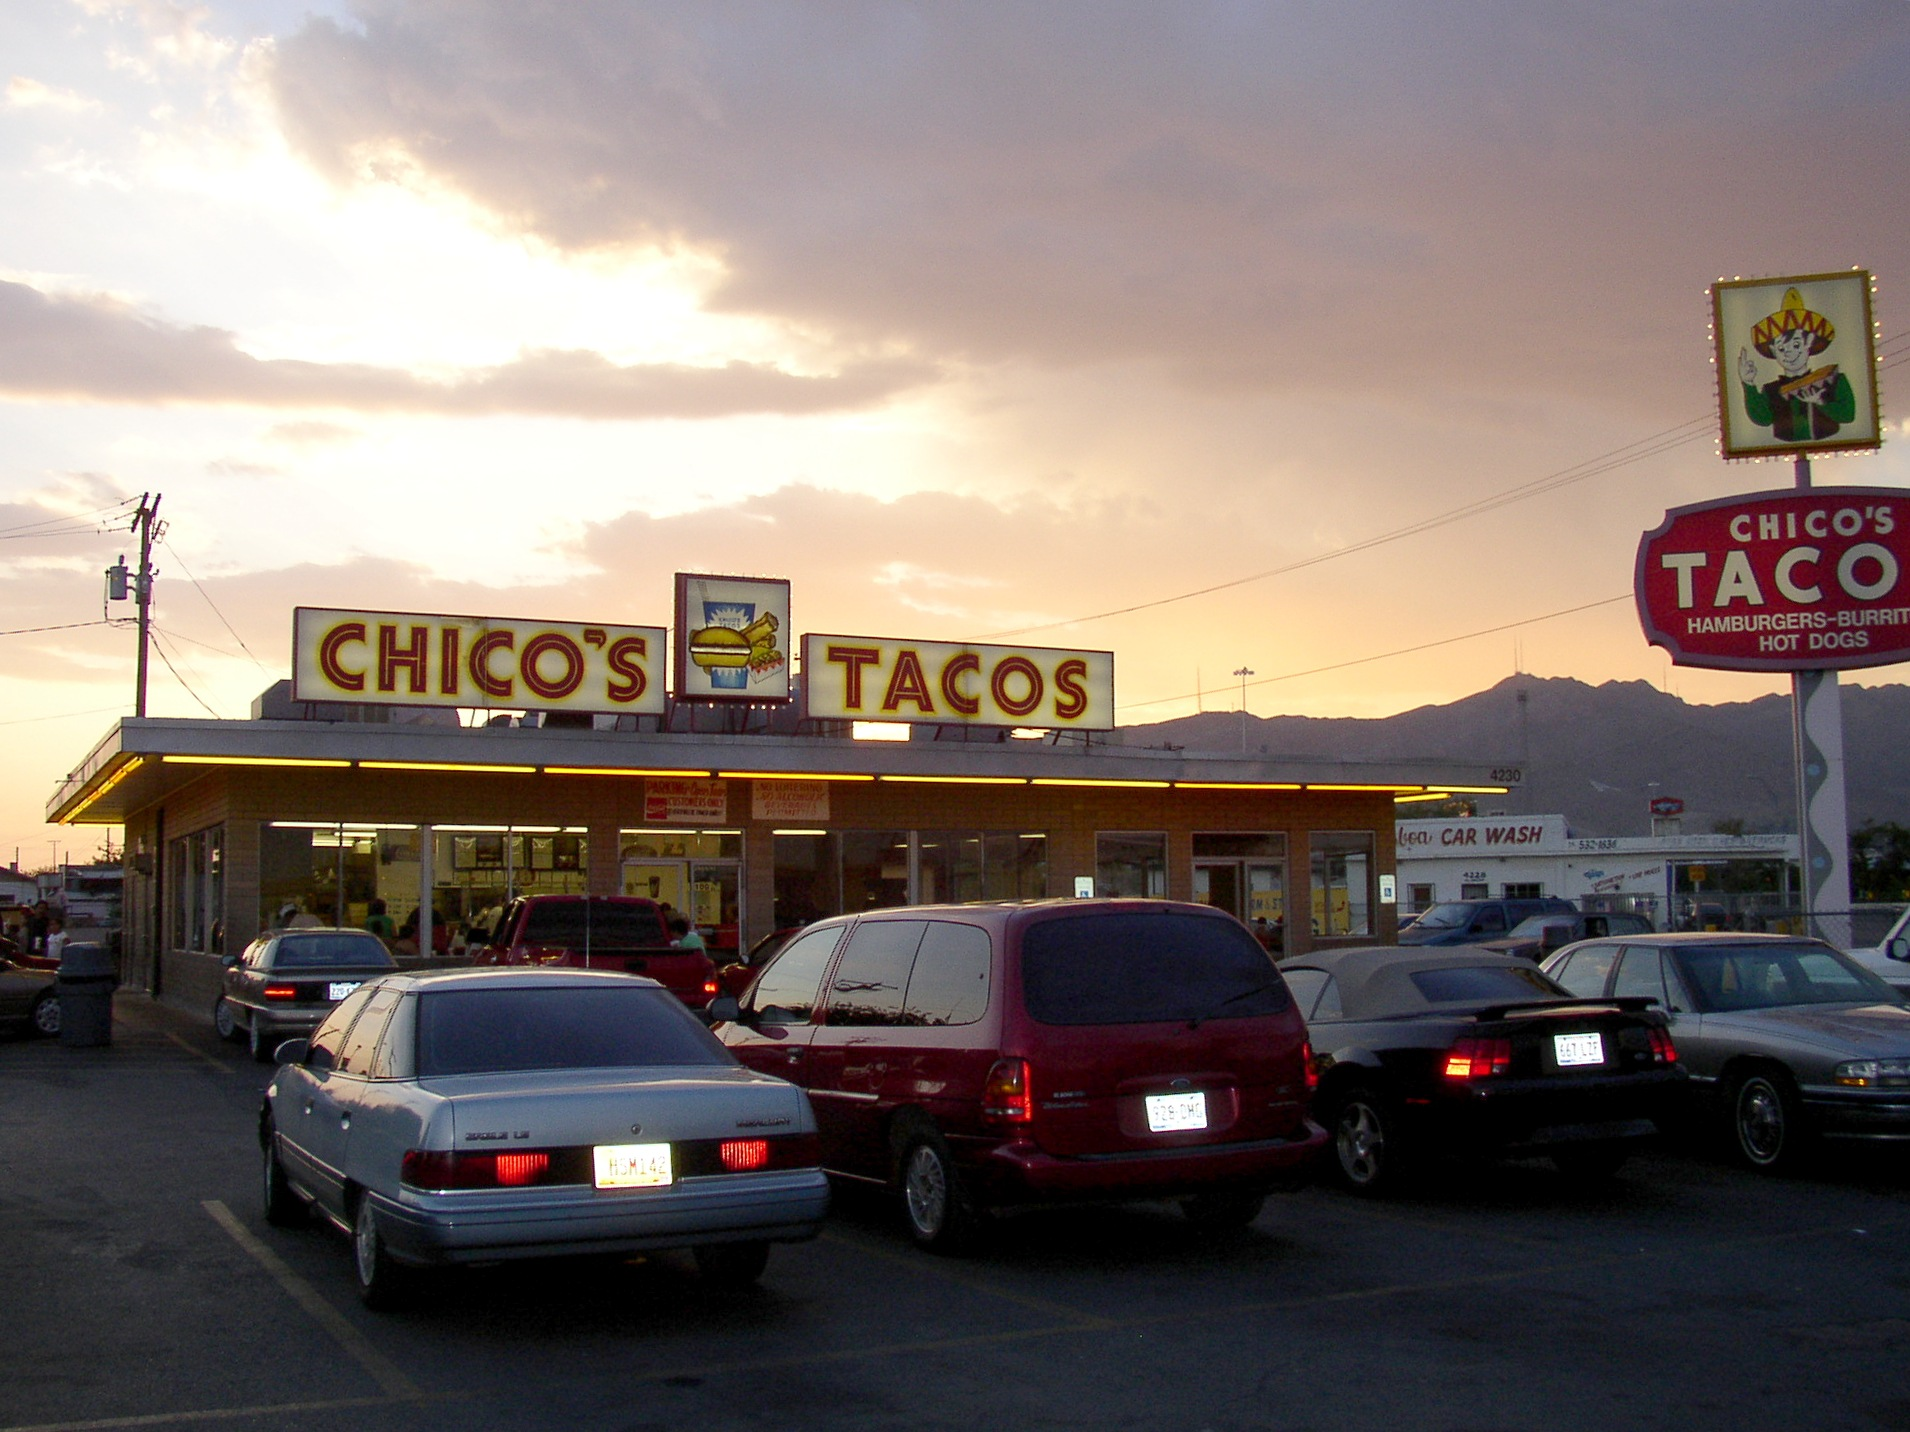 Chicos Tacos http://en.wikipedia.org/wiki/File:Chicos_Tacos_on_Alameda.JPG